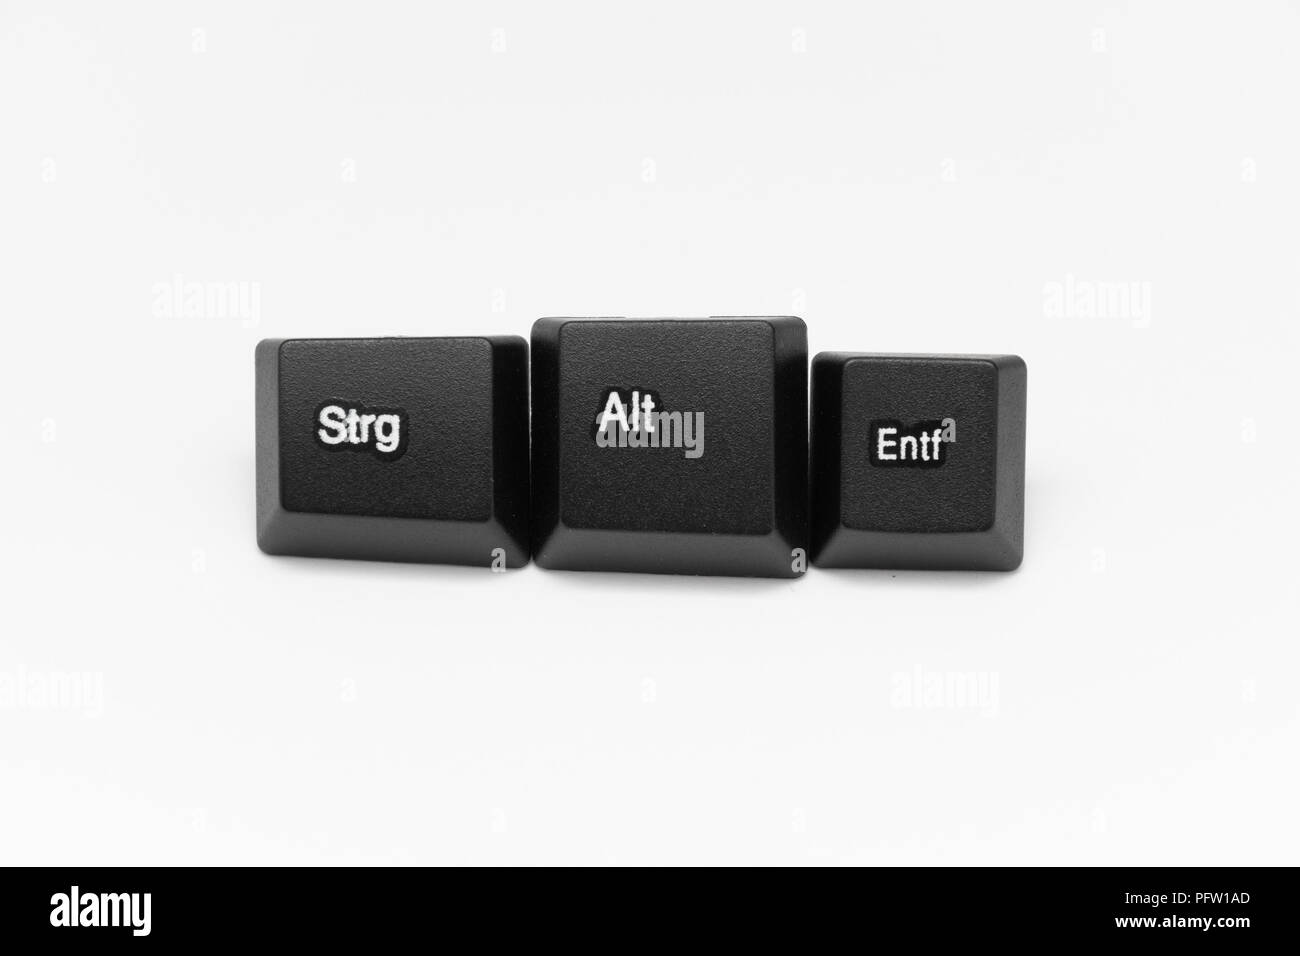 black keys of keyboard with different years words or names - Stock Image